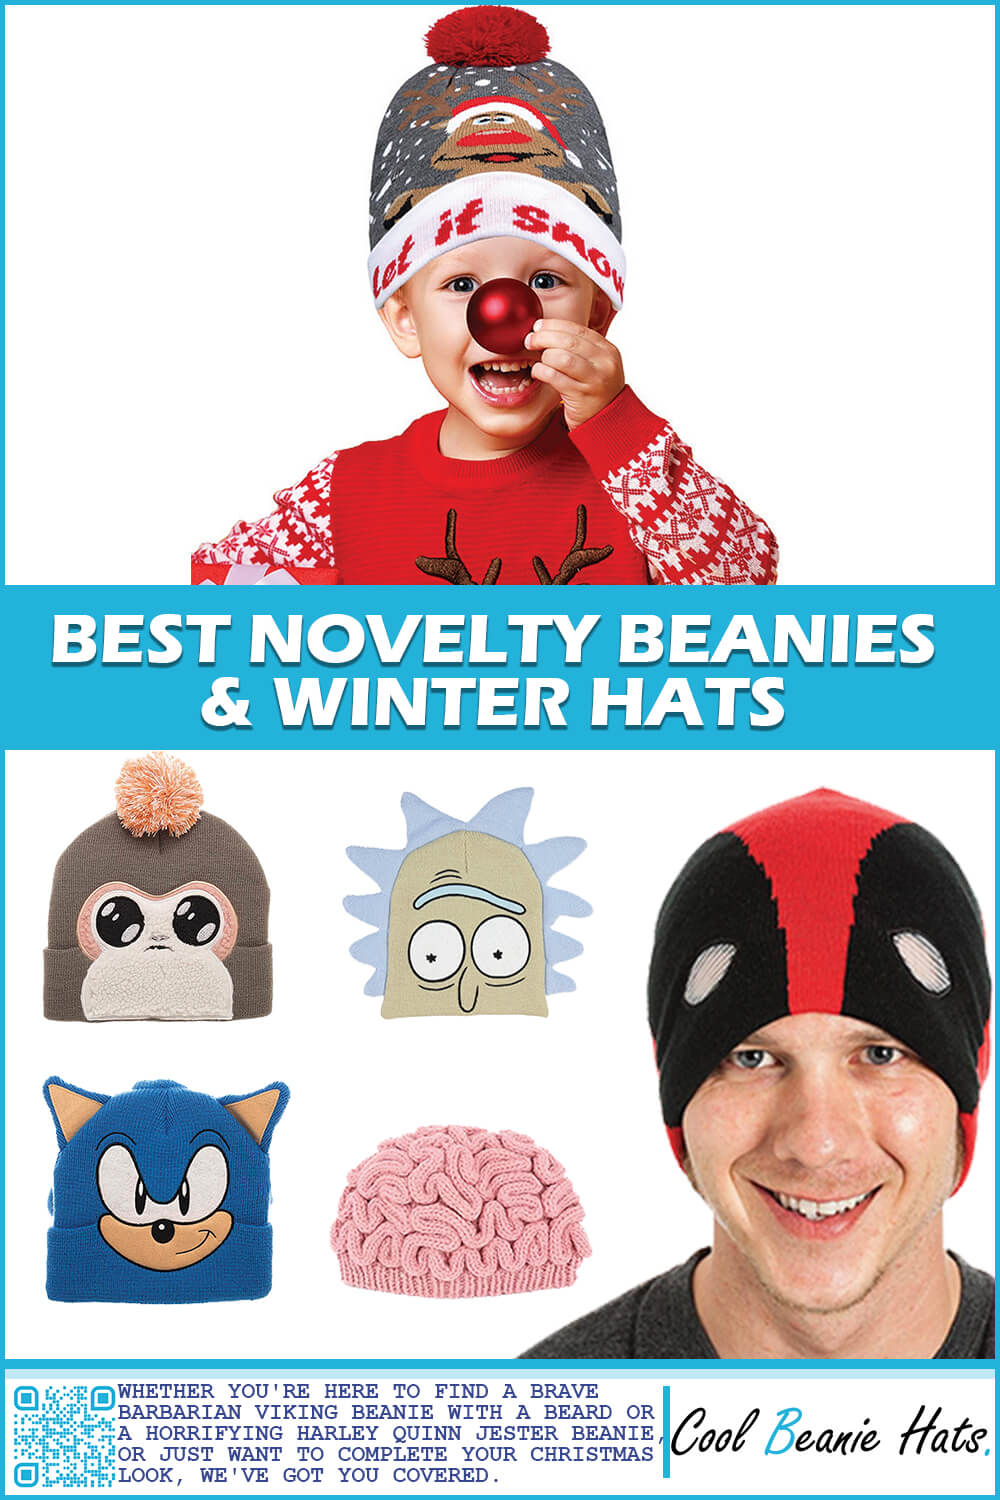 Best Novelty Beanies and Winter Hats